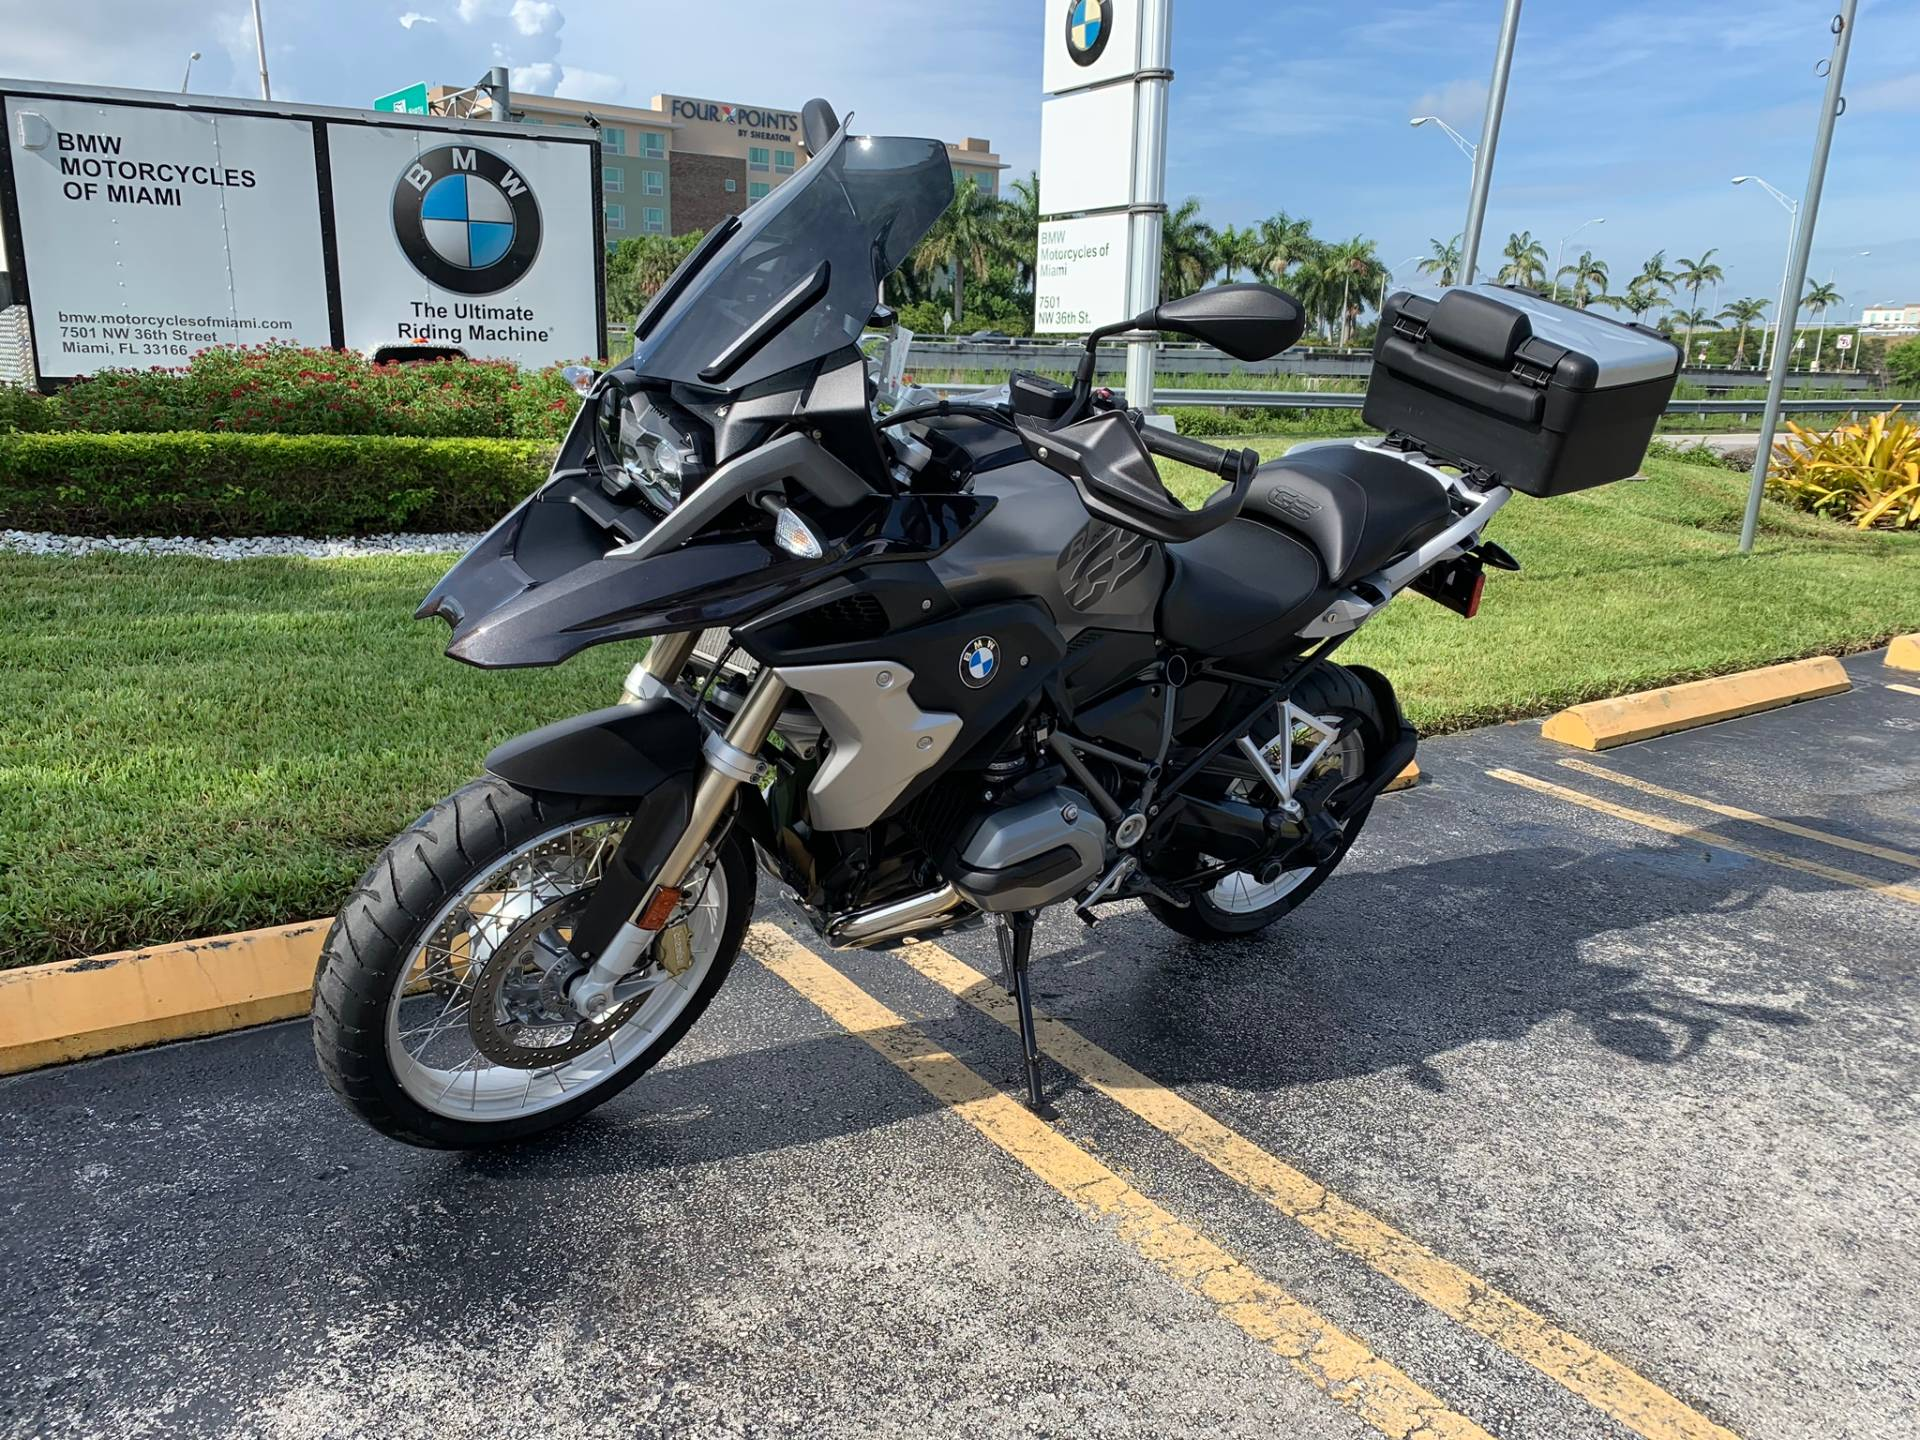 Used 2018 BMW R 1200 GS for sale, BMW R 1200GS for sale, BMW Motorcycle R1200GS, used BMW 1200GS, DUAL, GSA, BMW. BMW Motorcycles of Miami, Motorcycles of Miami, Motorcycles Miami, New Motorcycles, Used Motorcycles, pre-owned. #BMWMotorcyclesOfMiami #MotorcyclesOfMiami. - Photo 32